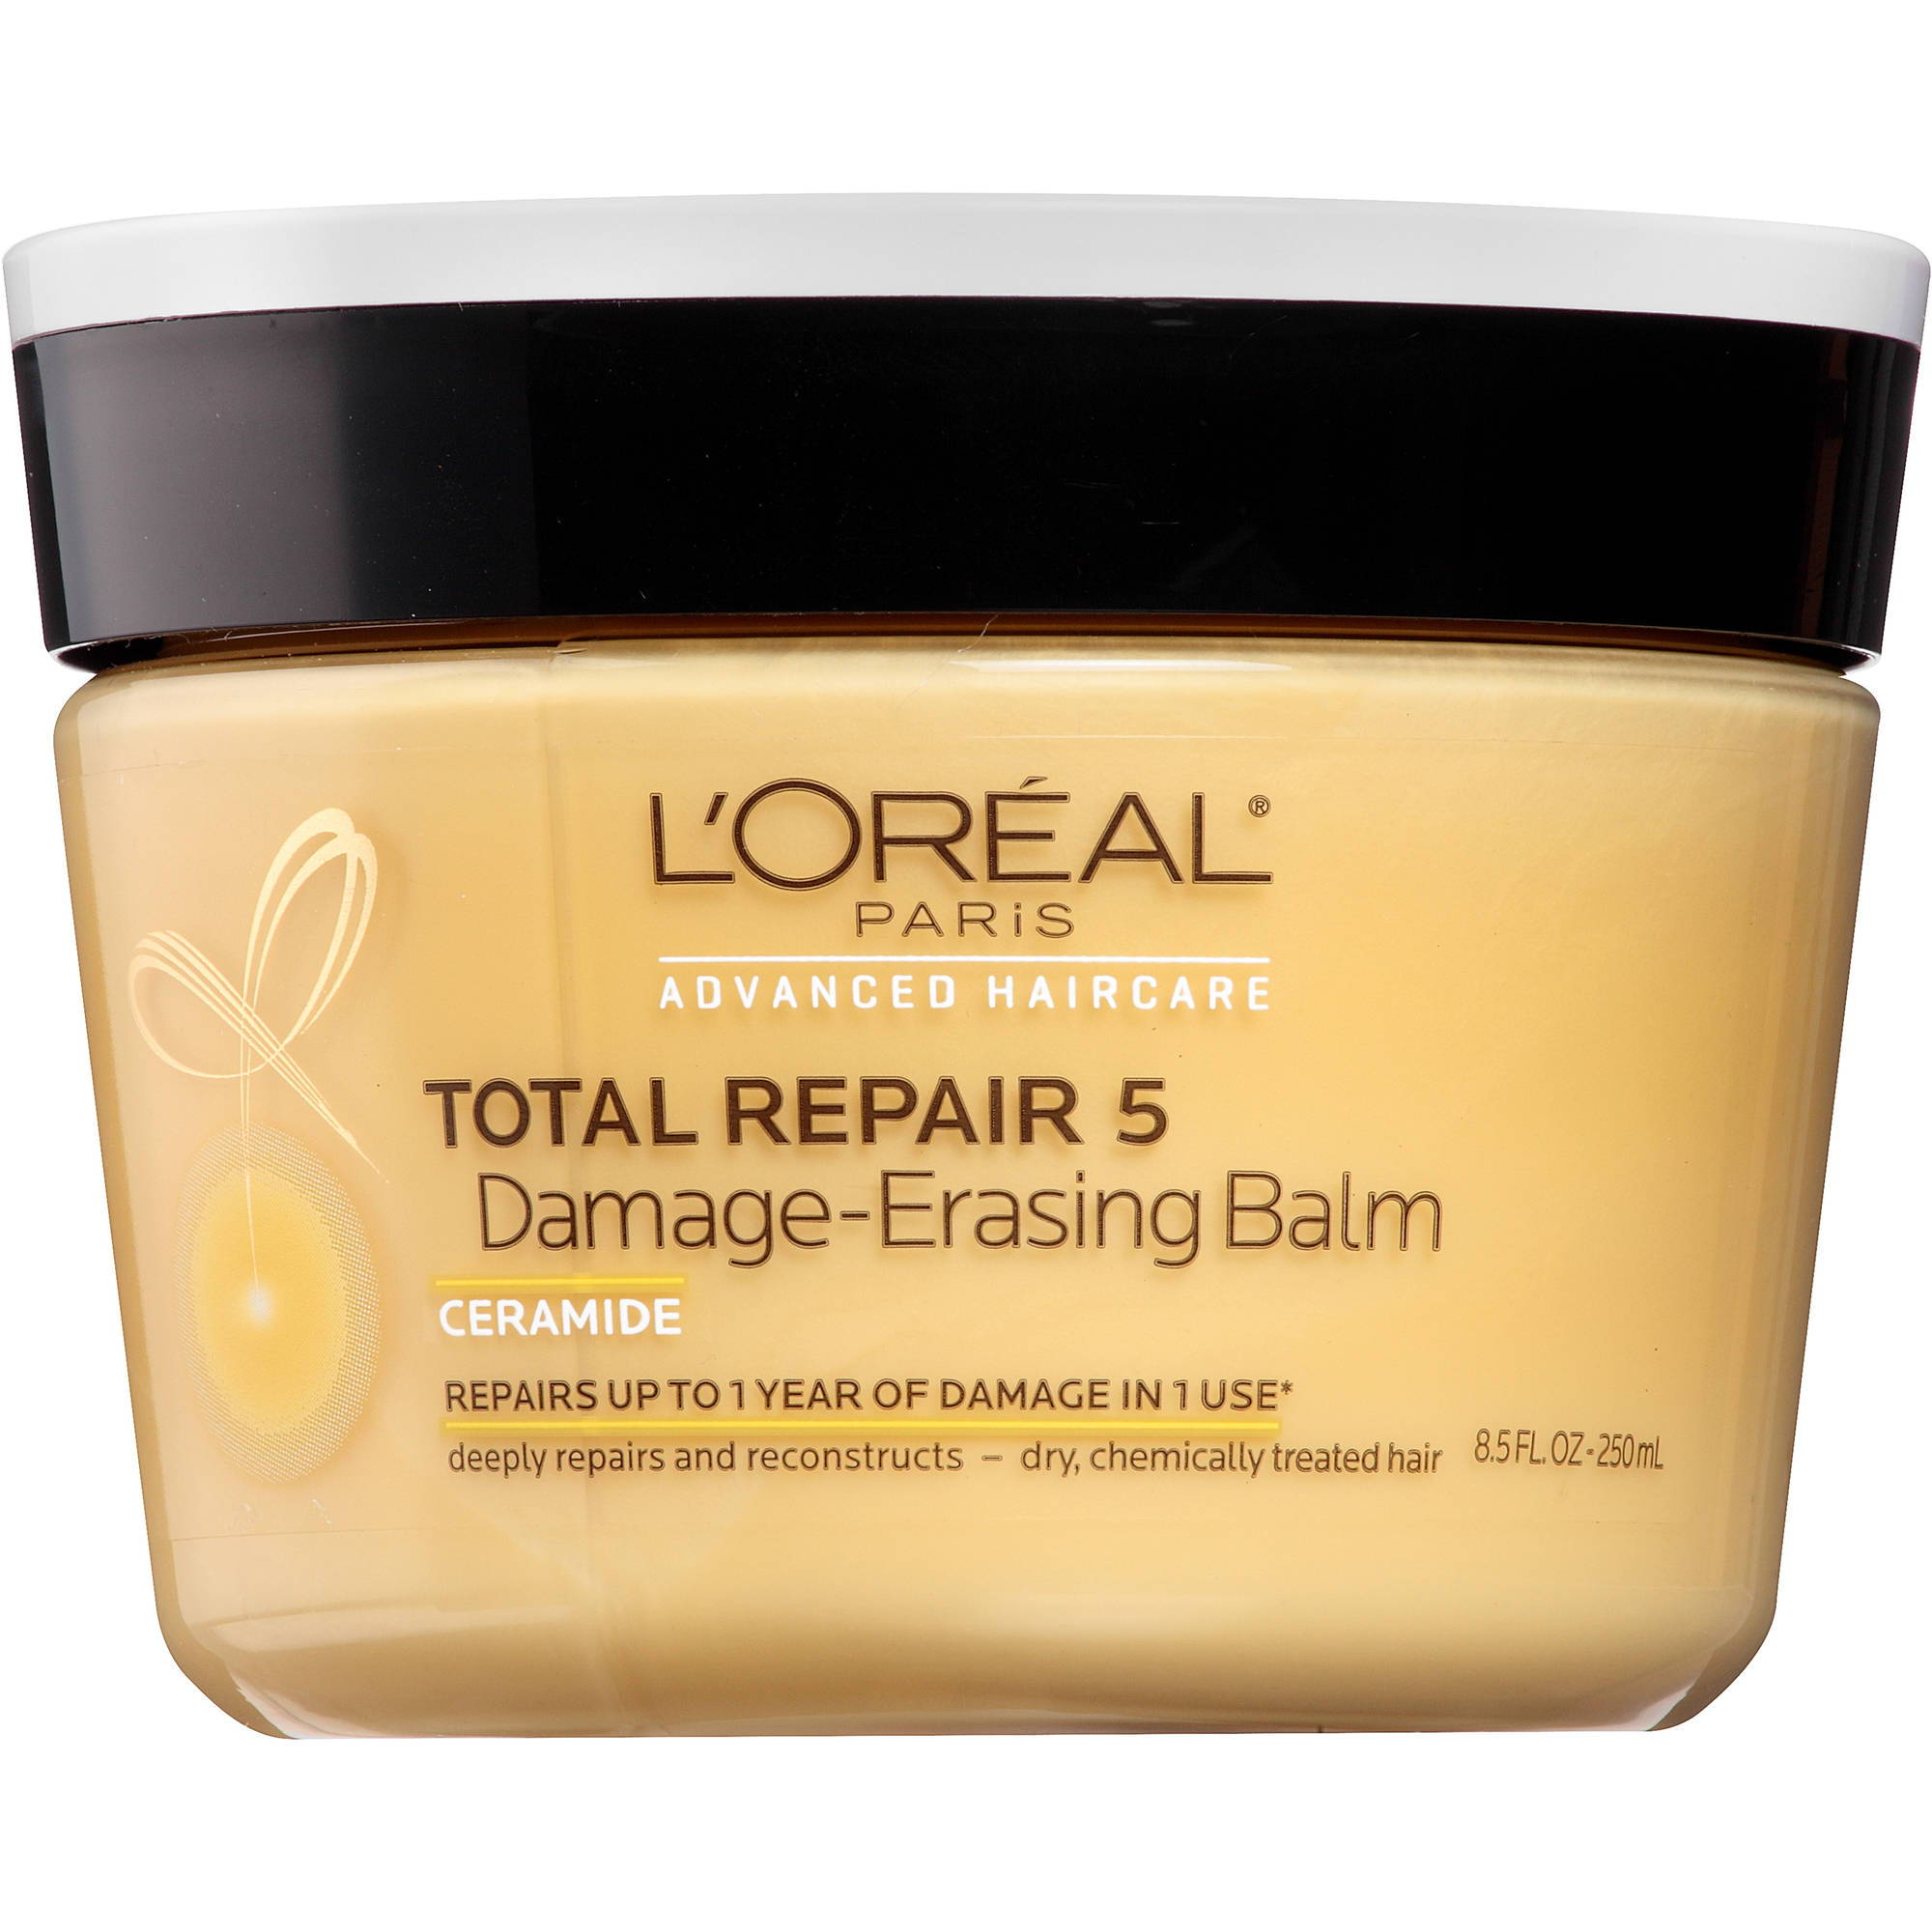 L'Oreal Paris Advanced Haircare Total Repair 5 Damage-Erasing Balm, 8.5 fl oz